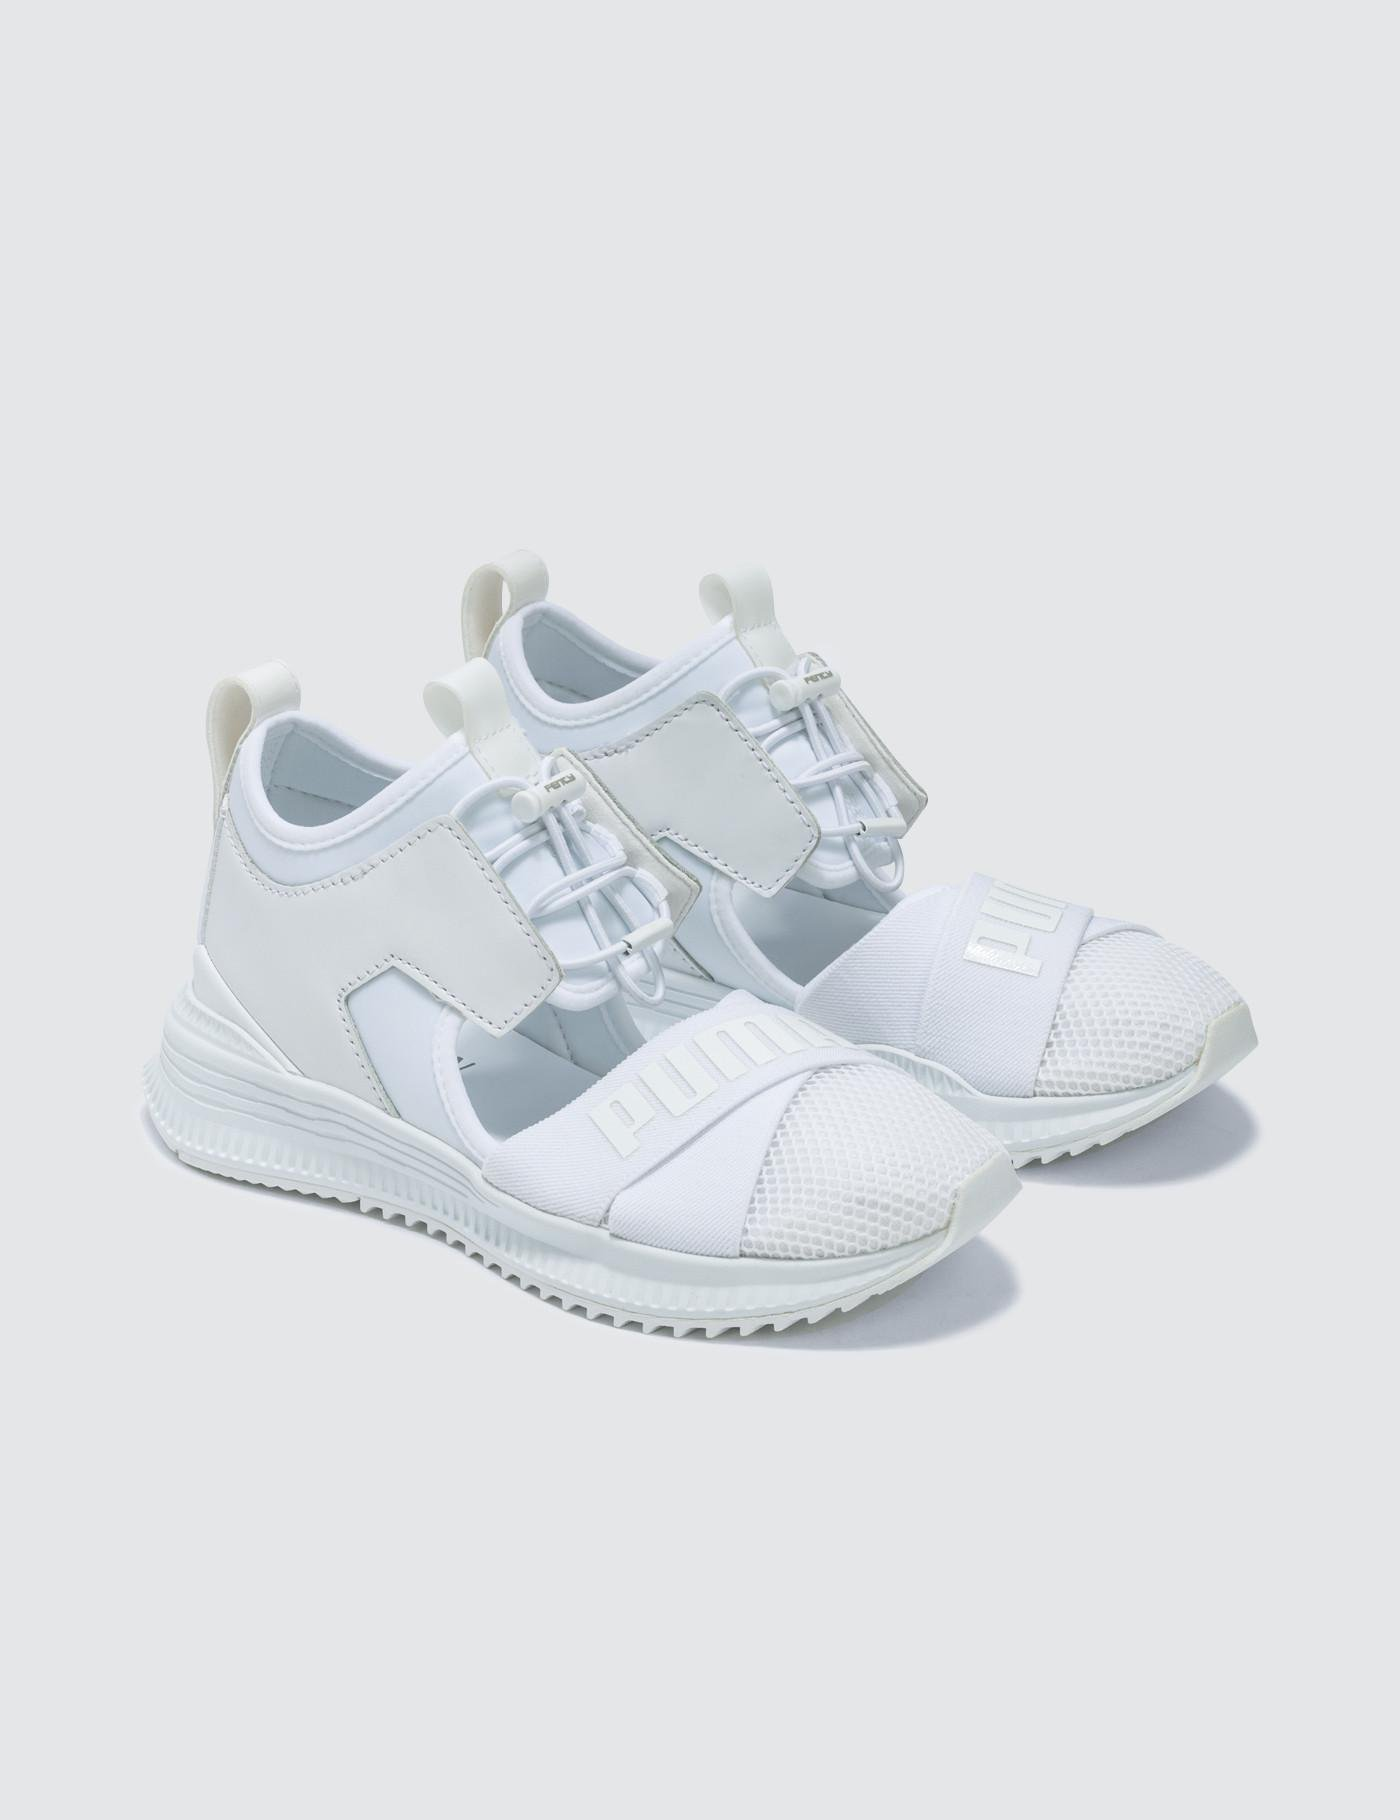 best sneakers cb5fc a3768 PUMA White Fenty Avid Wns Trainers